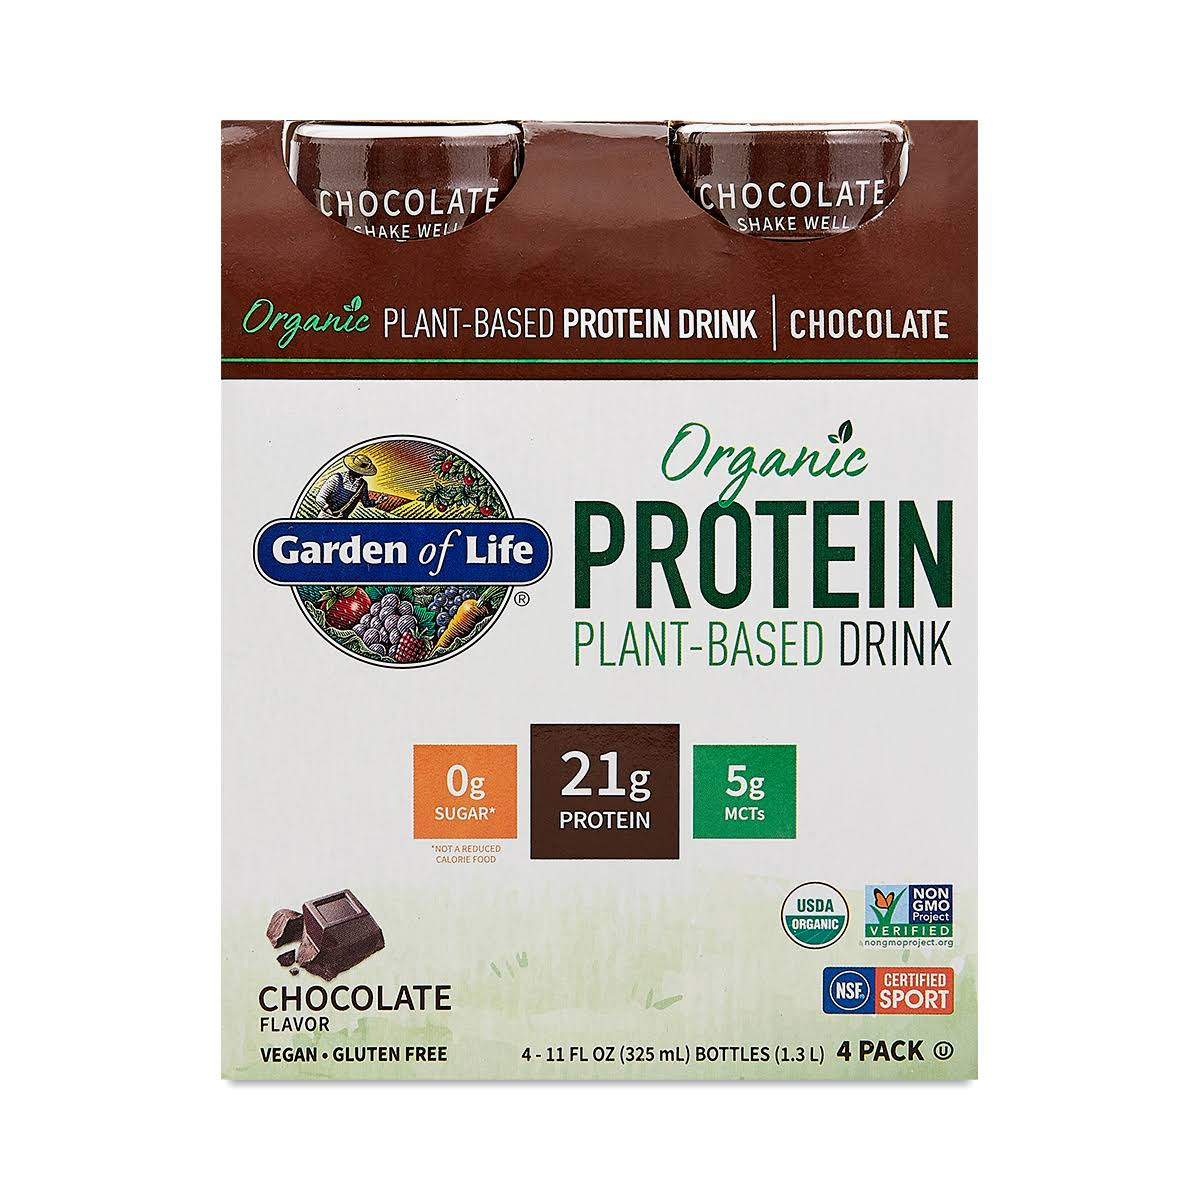 Garden Of Life Protein Drink, Organic, Chocolate, Plant-Based, 4 Pack - 4 pack, 11 fl oz bottles